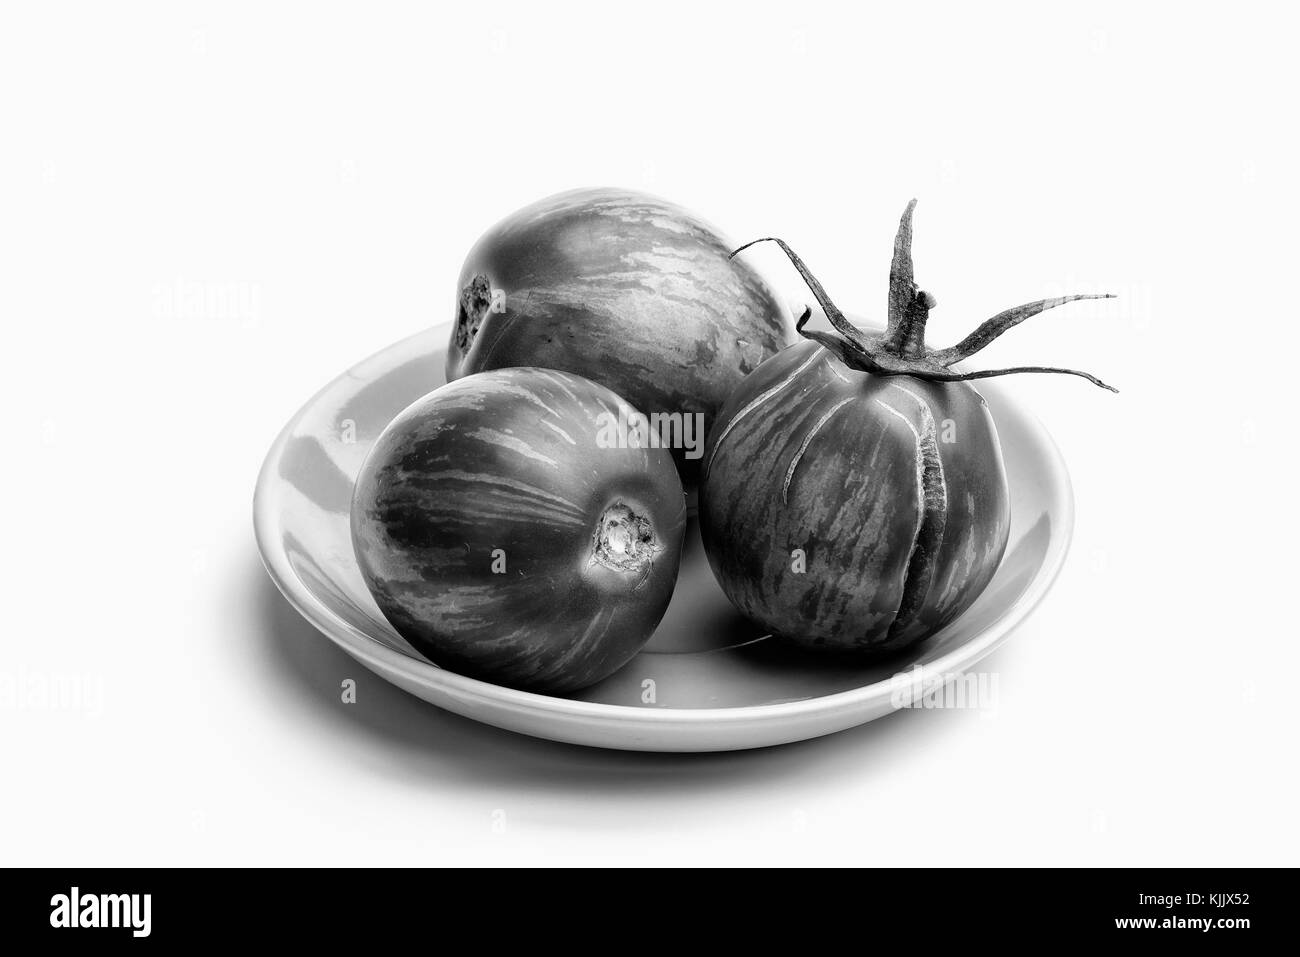 Three juicy red zebra tomatoes in a little yellow porcelain plate, isolated on white background - Stock Image